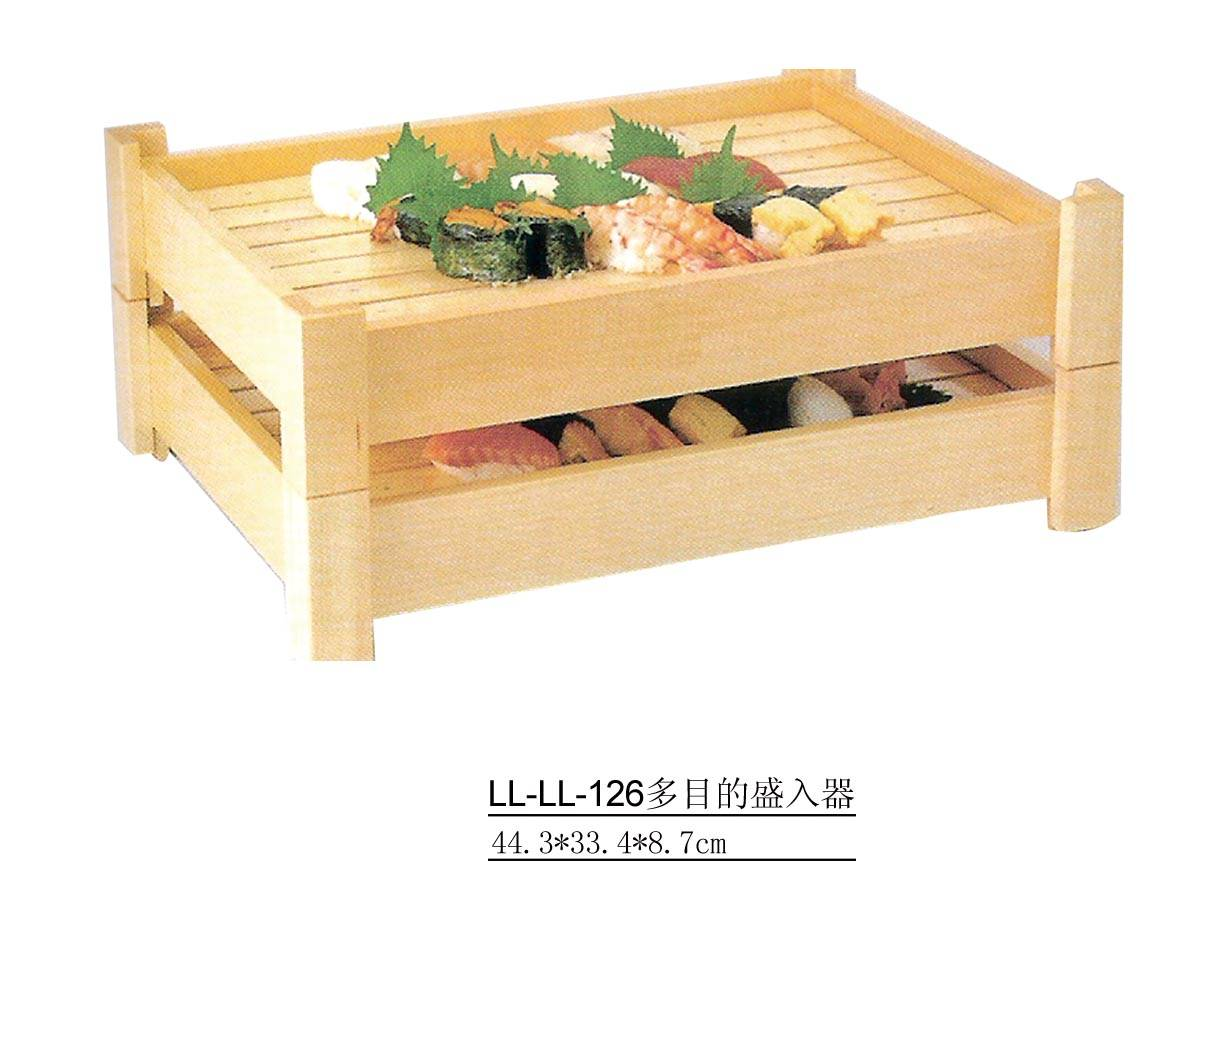 Sushi multilayer plate - LL-LL-126